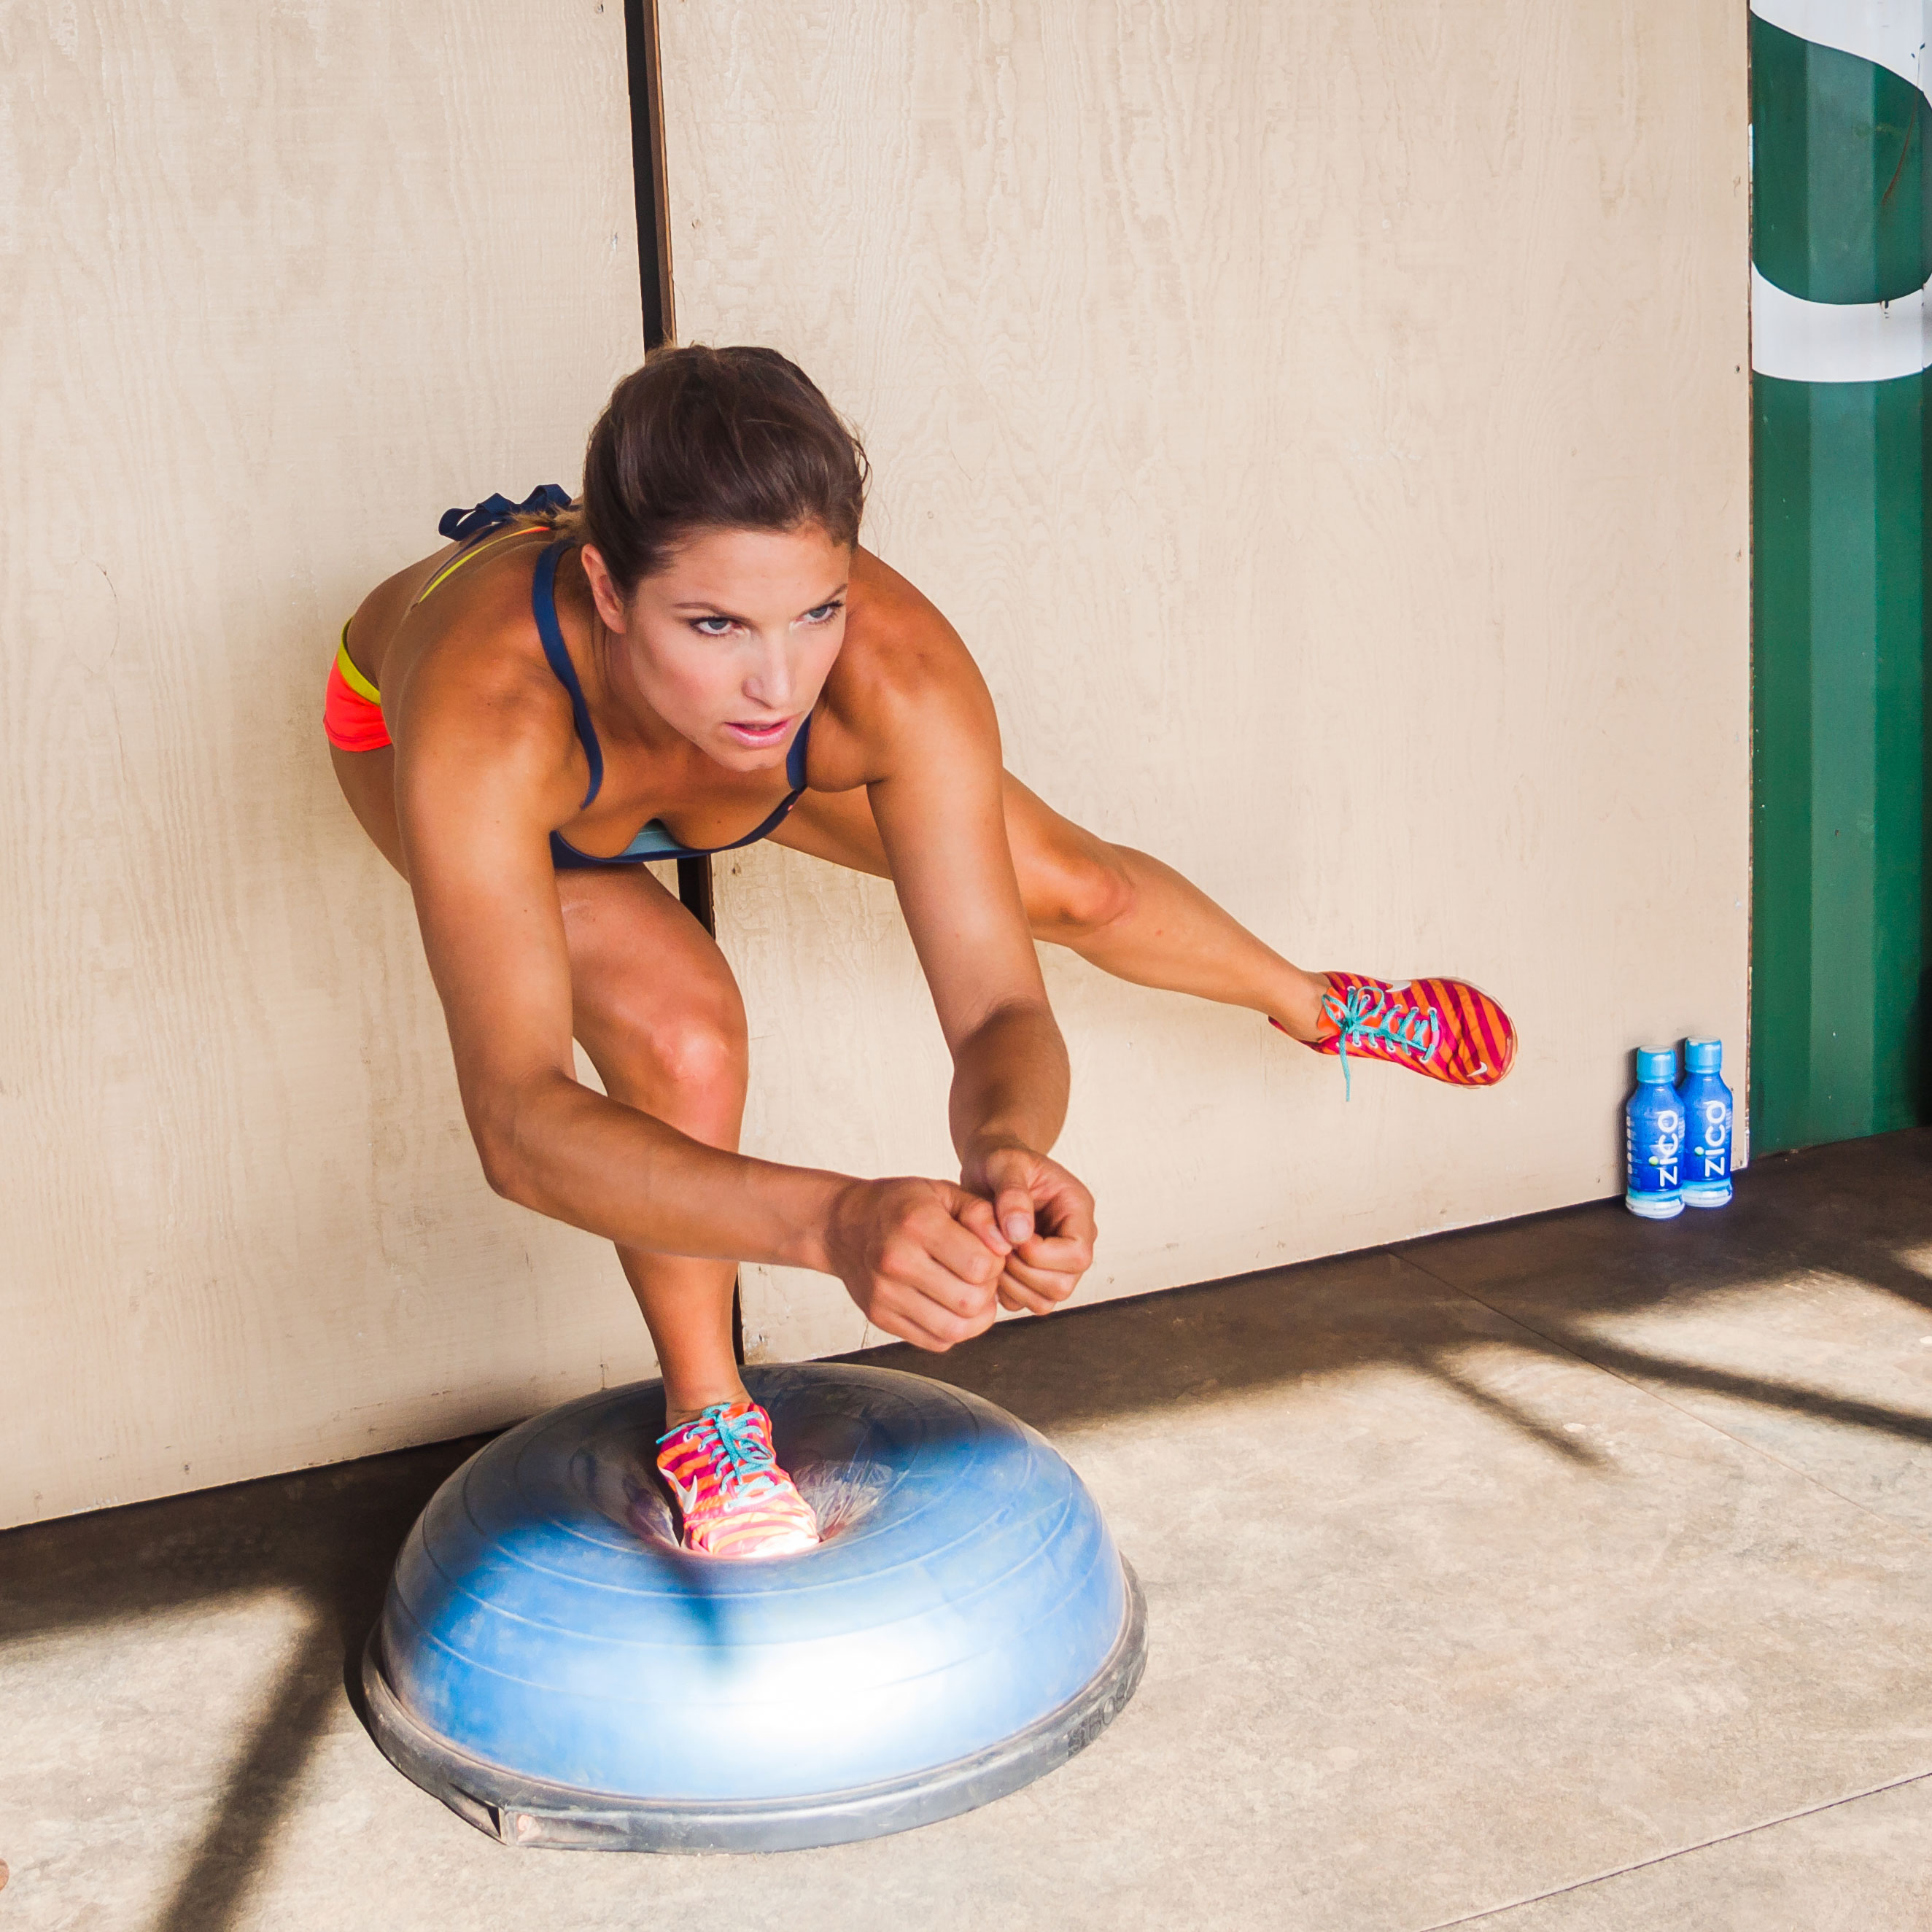 Bosu Ball Total Body Workout: 5 Functional Training Tools For A Full Body Workout (Part 2